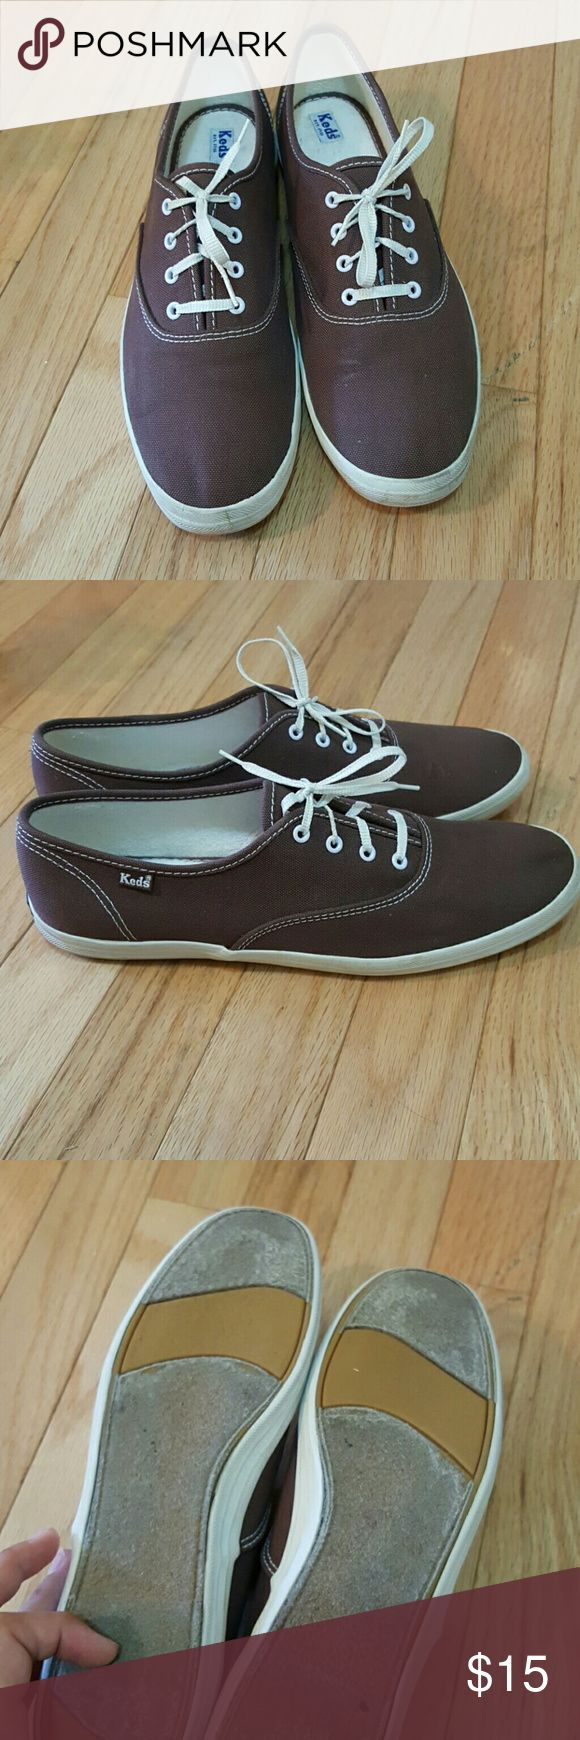 PRICE DROP! Keds, brown, Sz. 9.5 Keds.  Brown and white, size 9.5.  Soles are in great condition.  Please refer to pictures for further details.  Excellent pre-owned  condition.  Can be combined as a bundle with beige Keds, also size 9.5 in my closet. Keds Shoes Sneakers